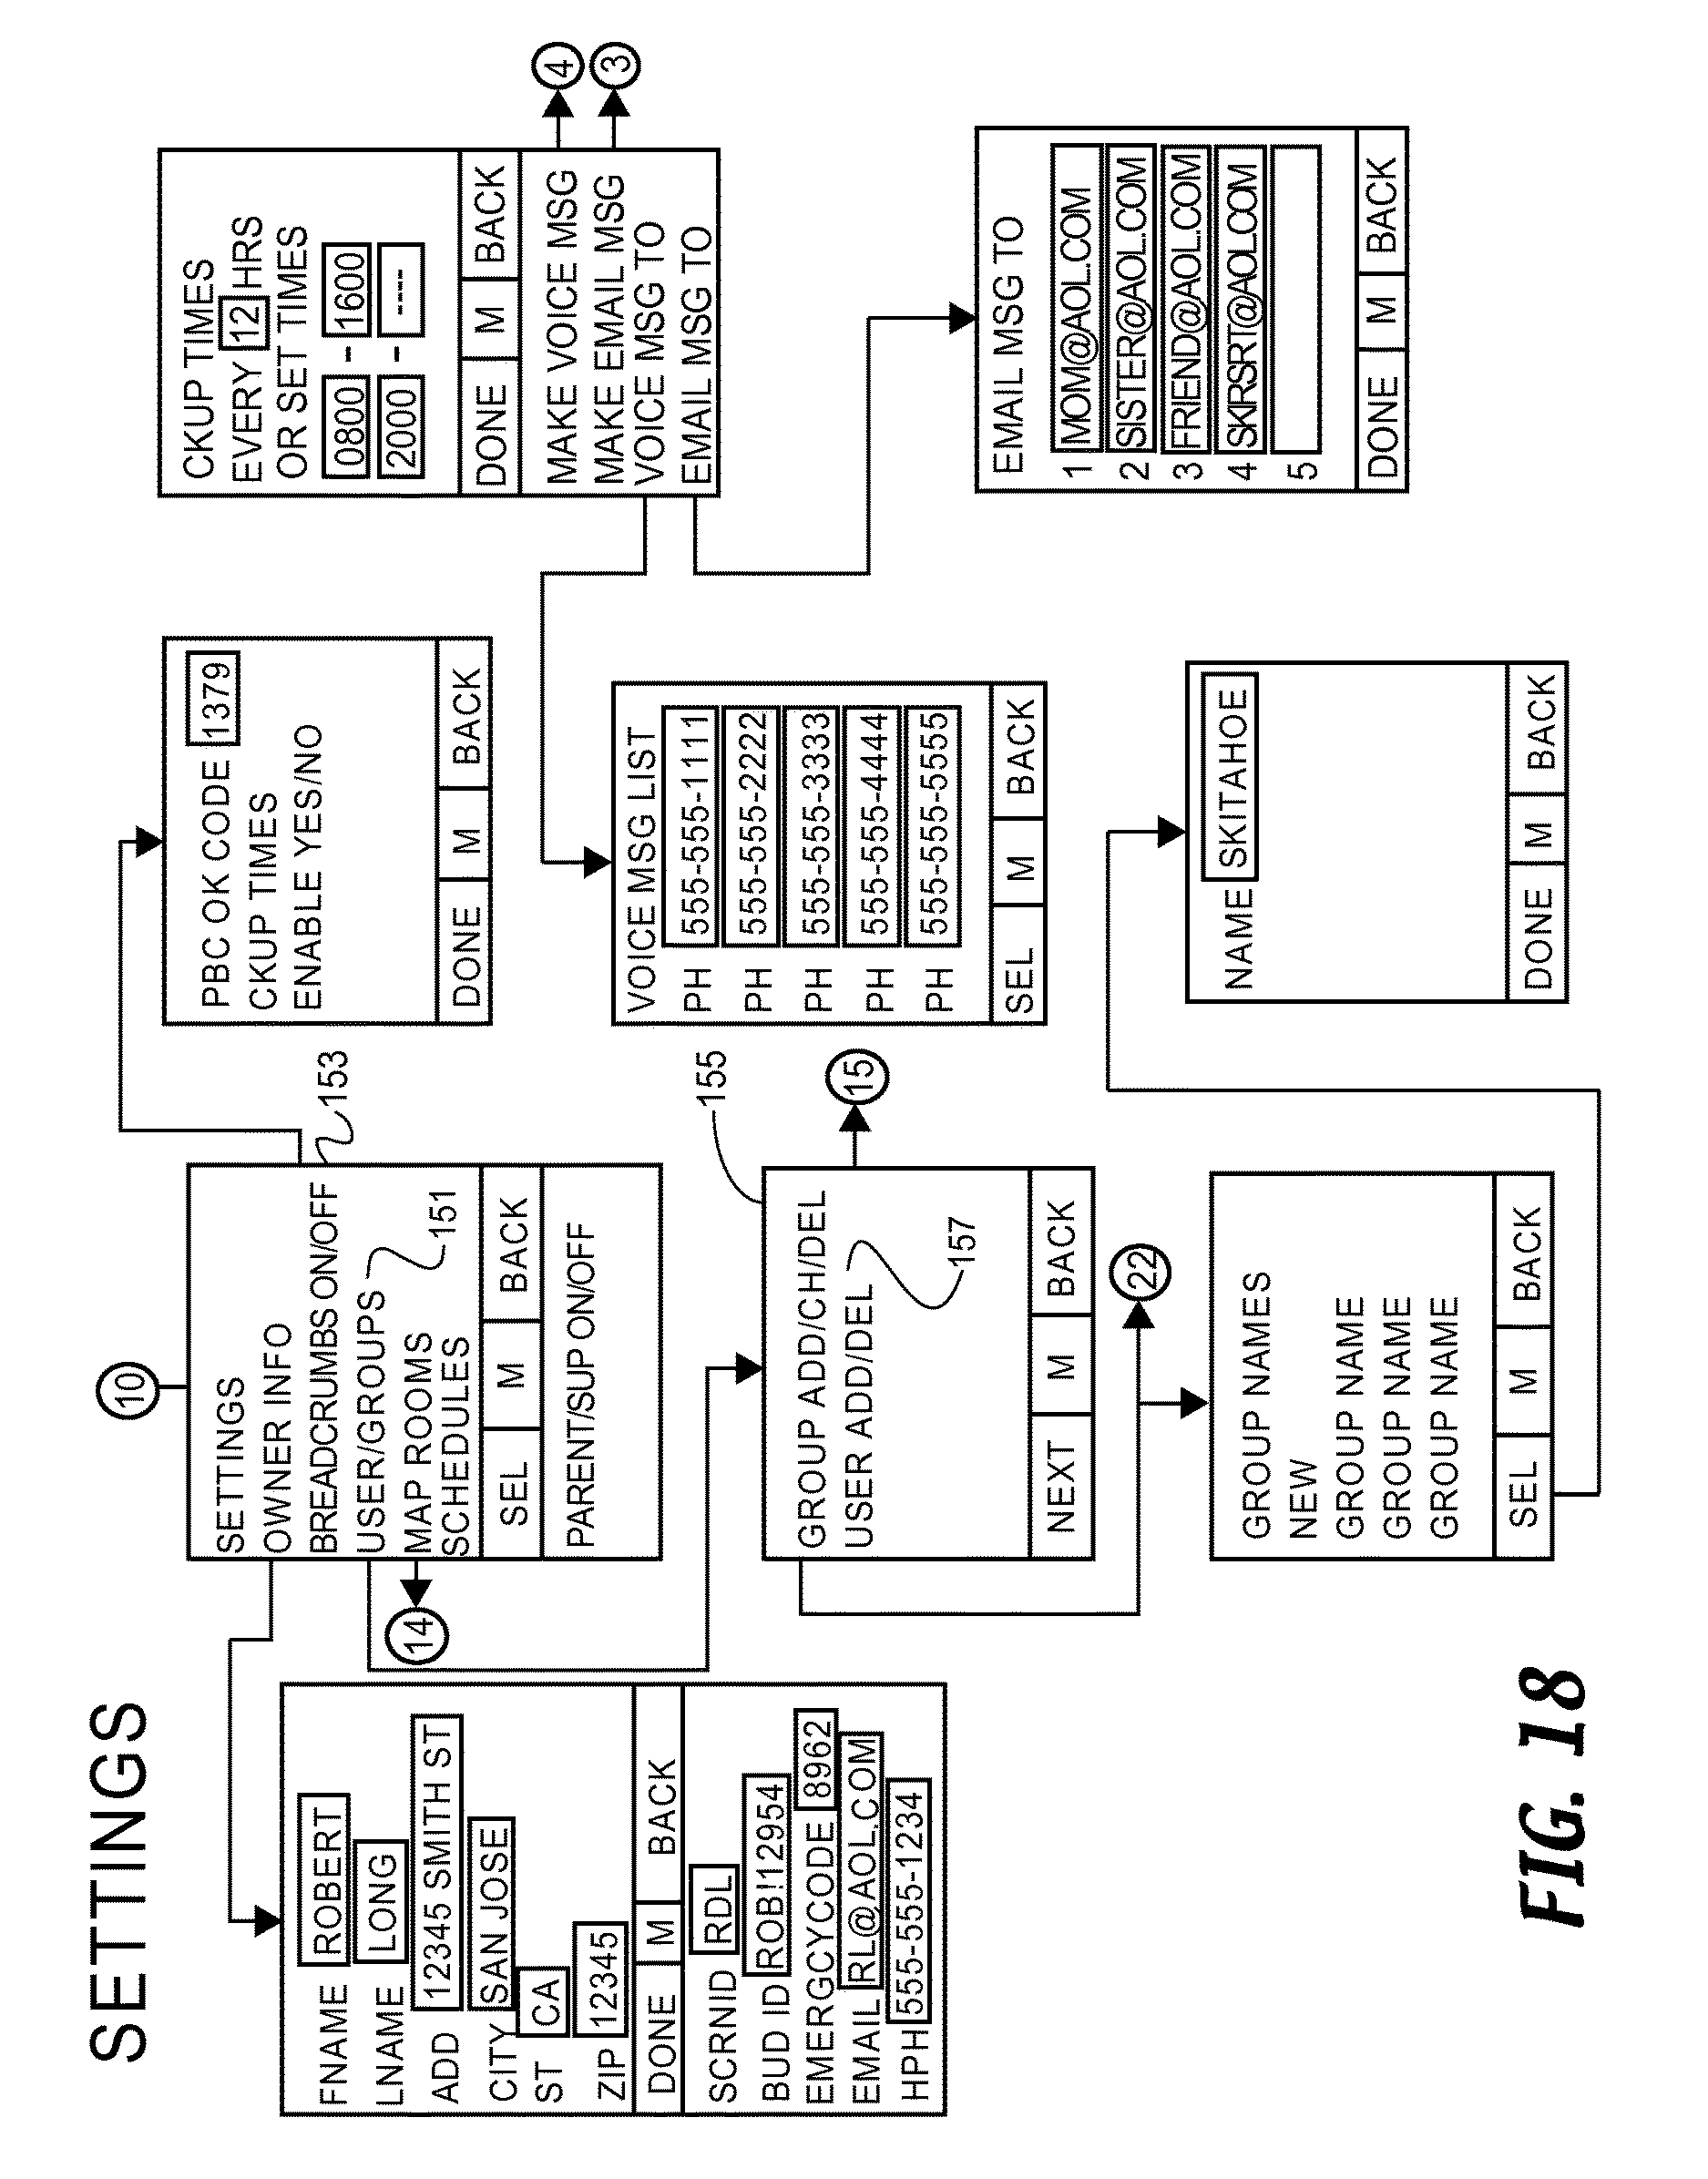 Us9584960b1 Rendez Vous Management Using Mobile Phones Or Other Installing Aeon Labs Micro Dimmer On 4way Circuit Connected Things Devices Google Patents